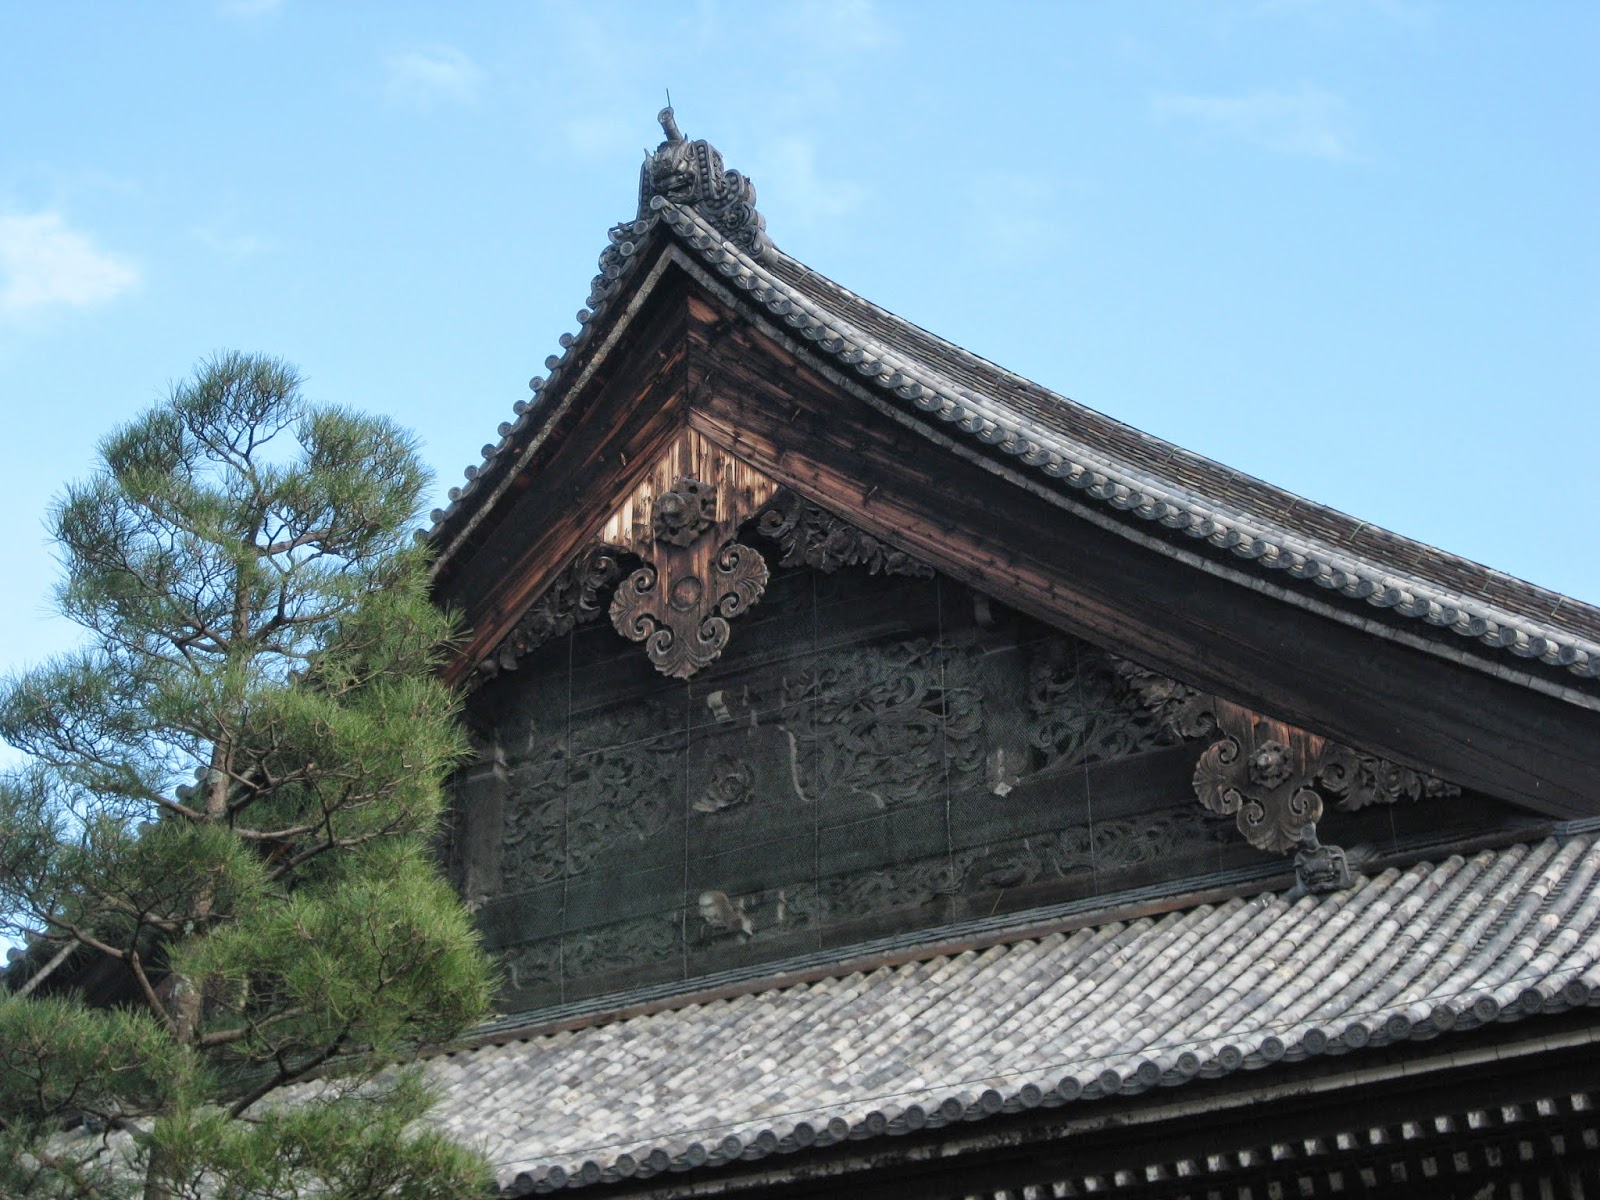 Kyoto - Ornate roof of a temple